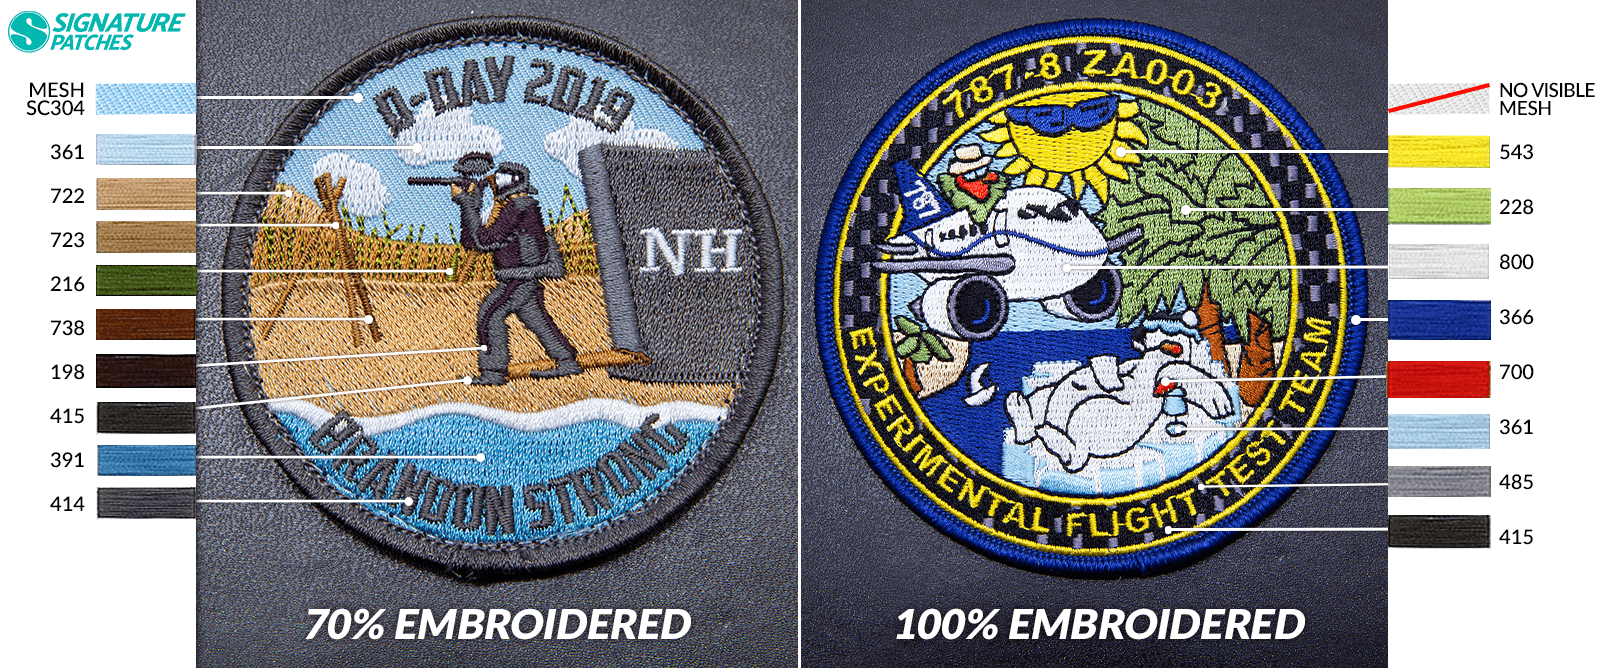 SignaturePatches - 70percent and 100percent Embroidery Thread Colors